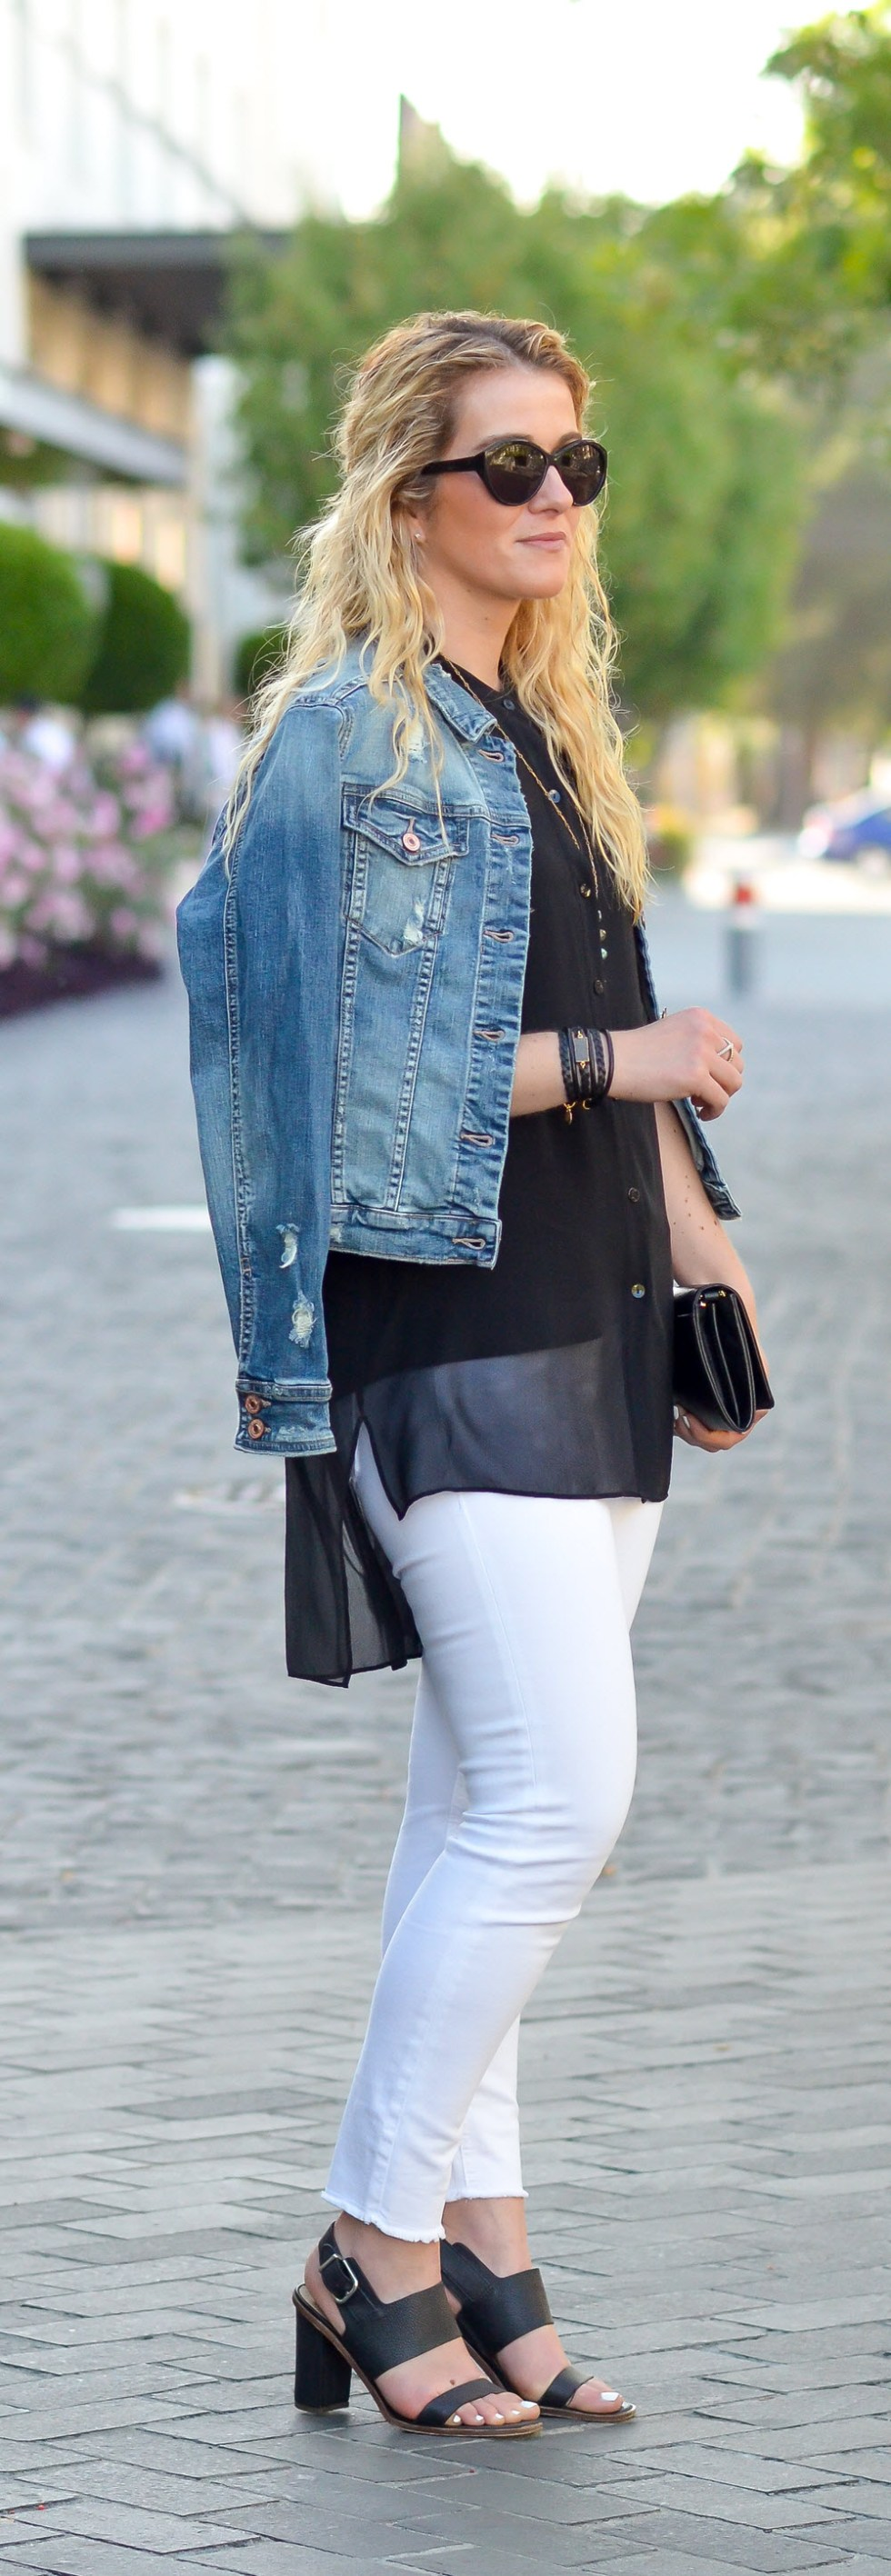 Black Top with White Jeans Outfit. A perfect date night outfit. White jeans with a denim jacket is the perfect way to look chic and casual all at the same time!